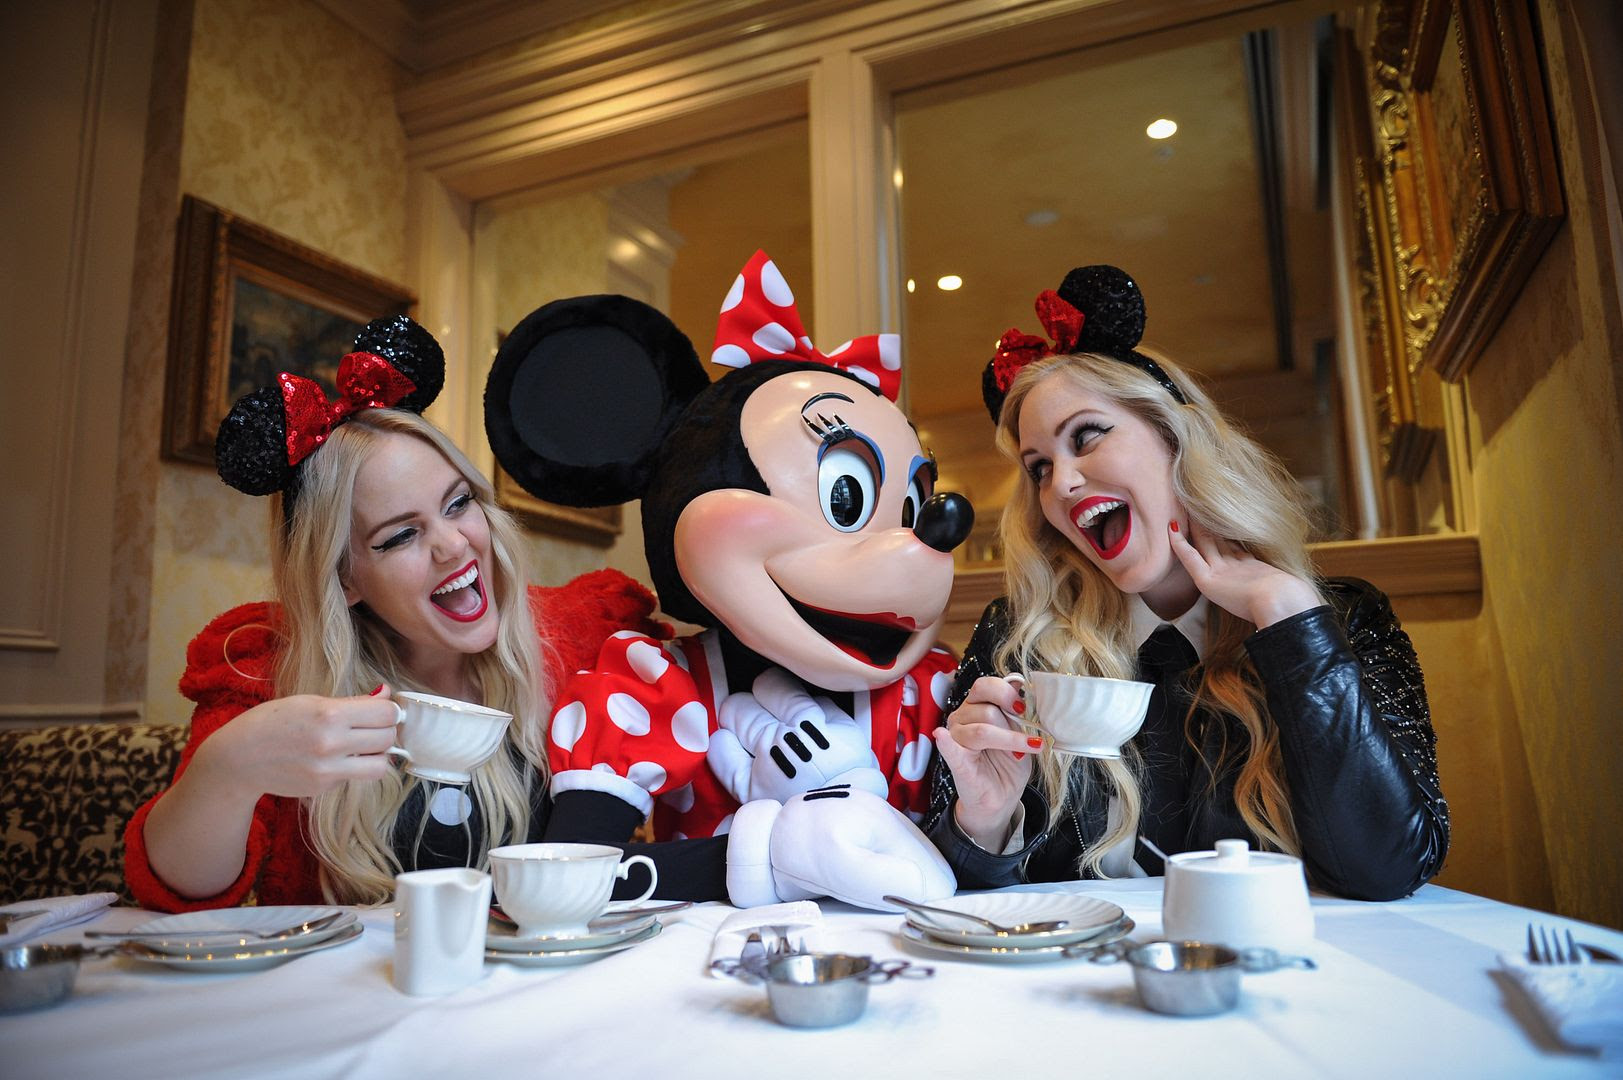 photo minniestyle-minniemouse-disney-beckermanblog-cailliandsambeckerman-disney-worldmastercardfashionweek-toronto-8_zps712581ac.jpg